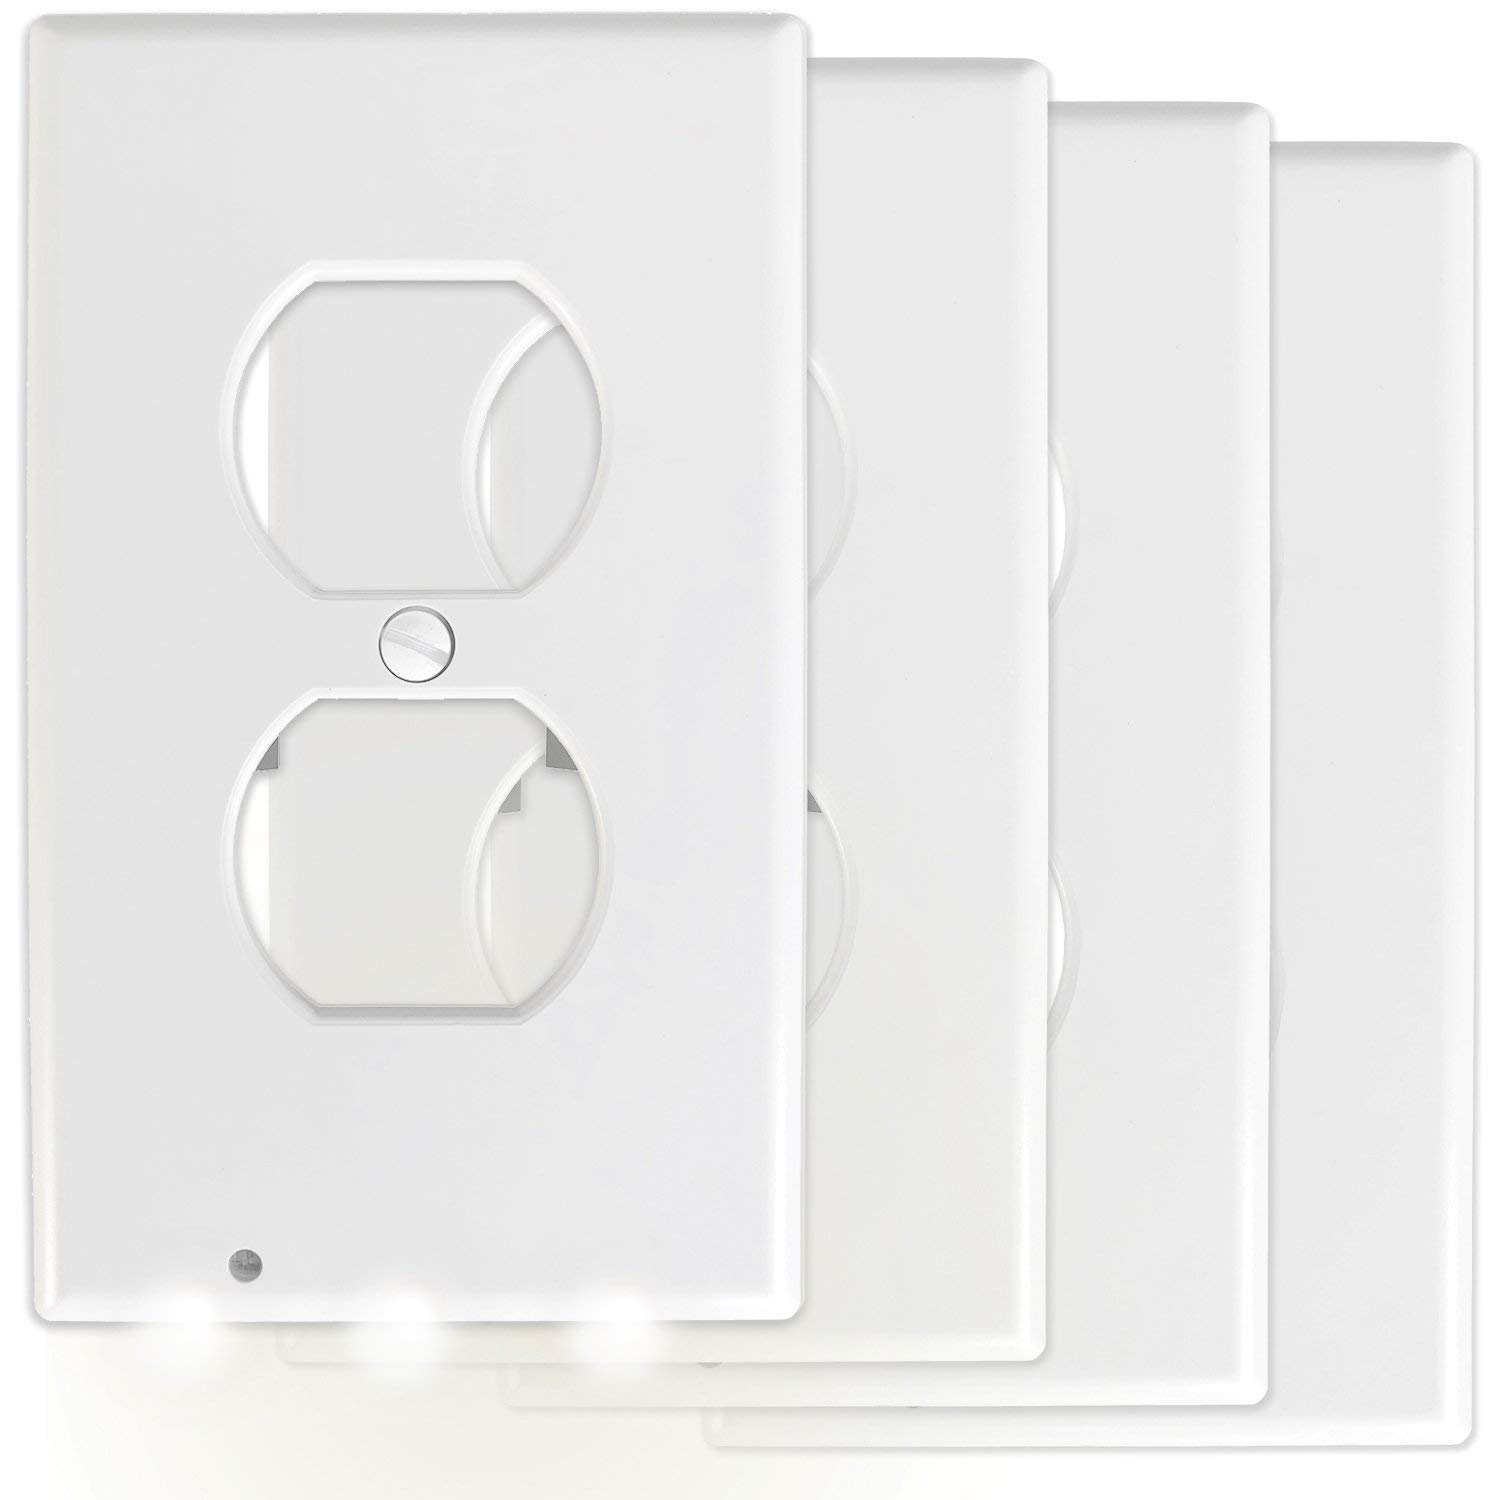 [NEW RELEASE - PREMIUM CONNECTORS] 4-Pack KCC Industries Outlet Wall Plate With LED Night Lights - No Batteris Or Wires - Installs In Seconds (Cool Bright White Lights)